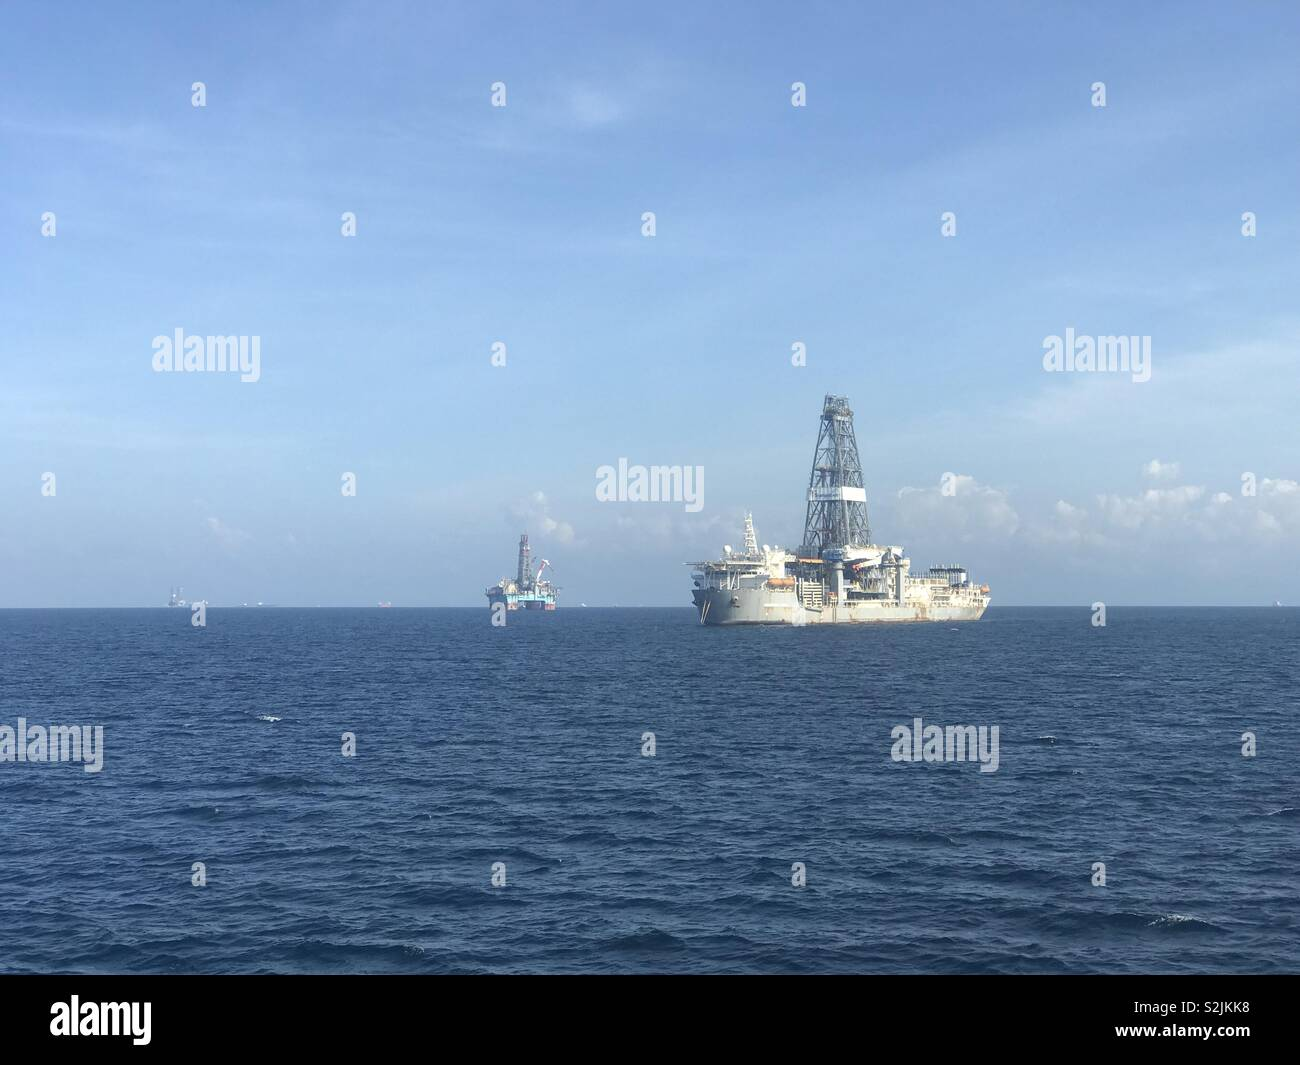 Oil and gas ship - Stock Image